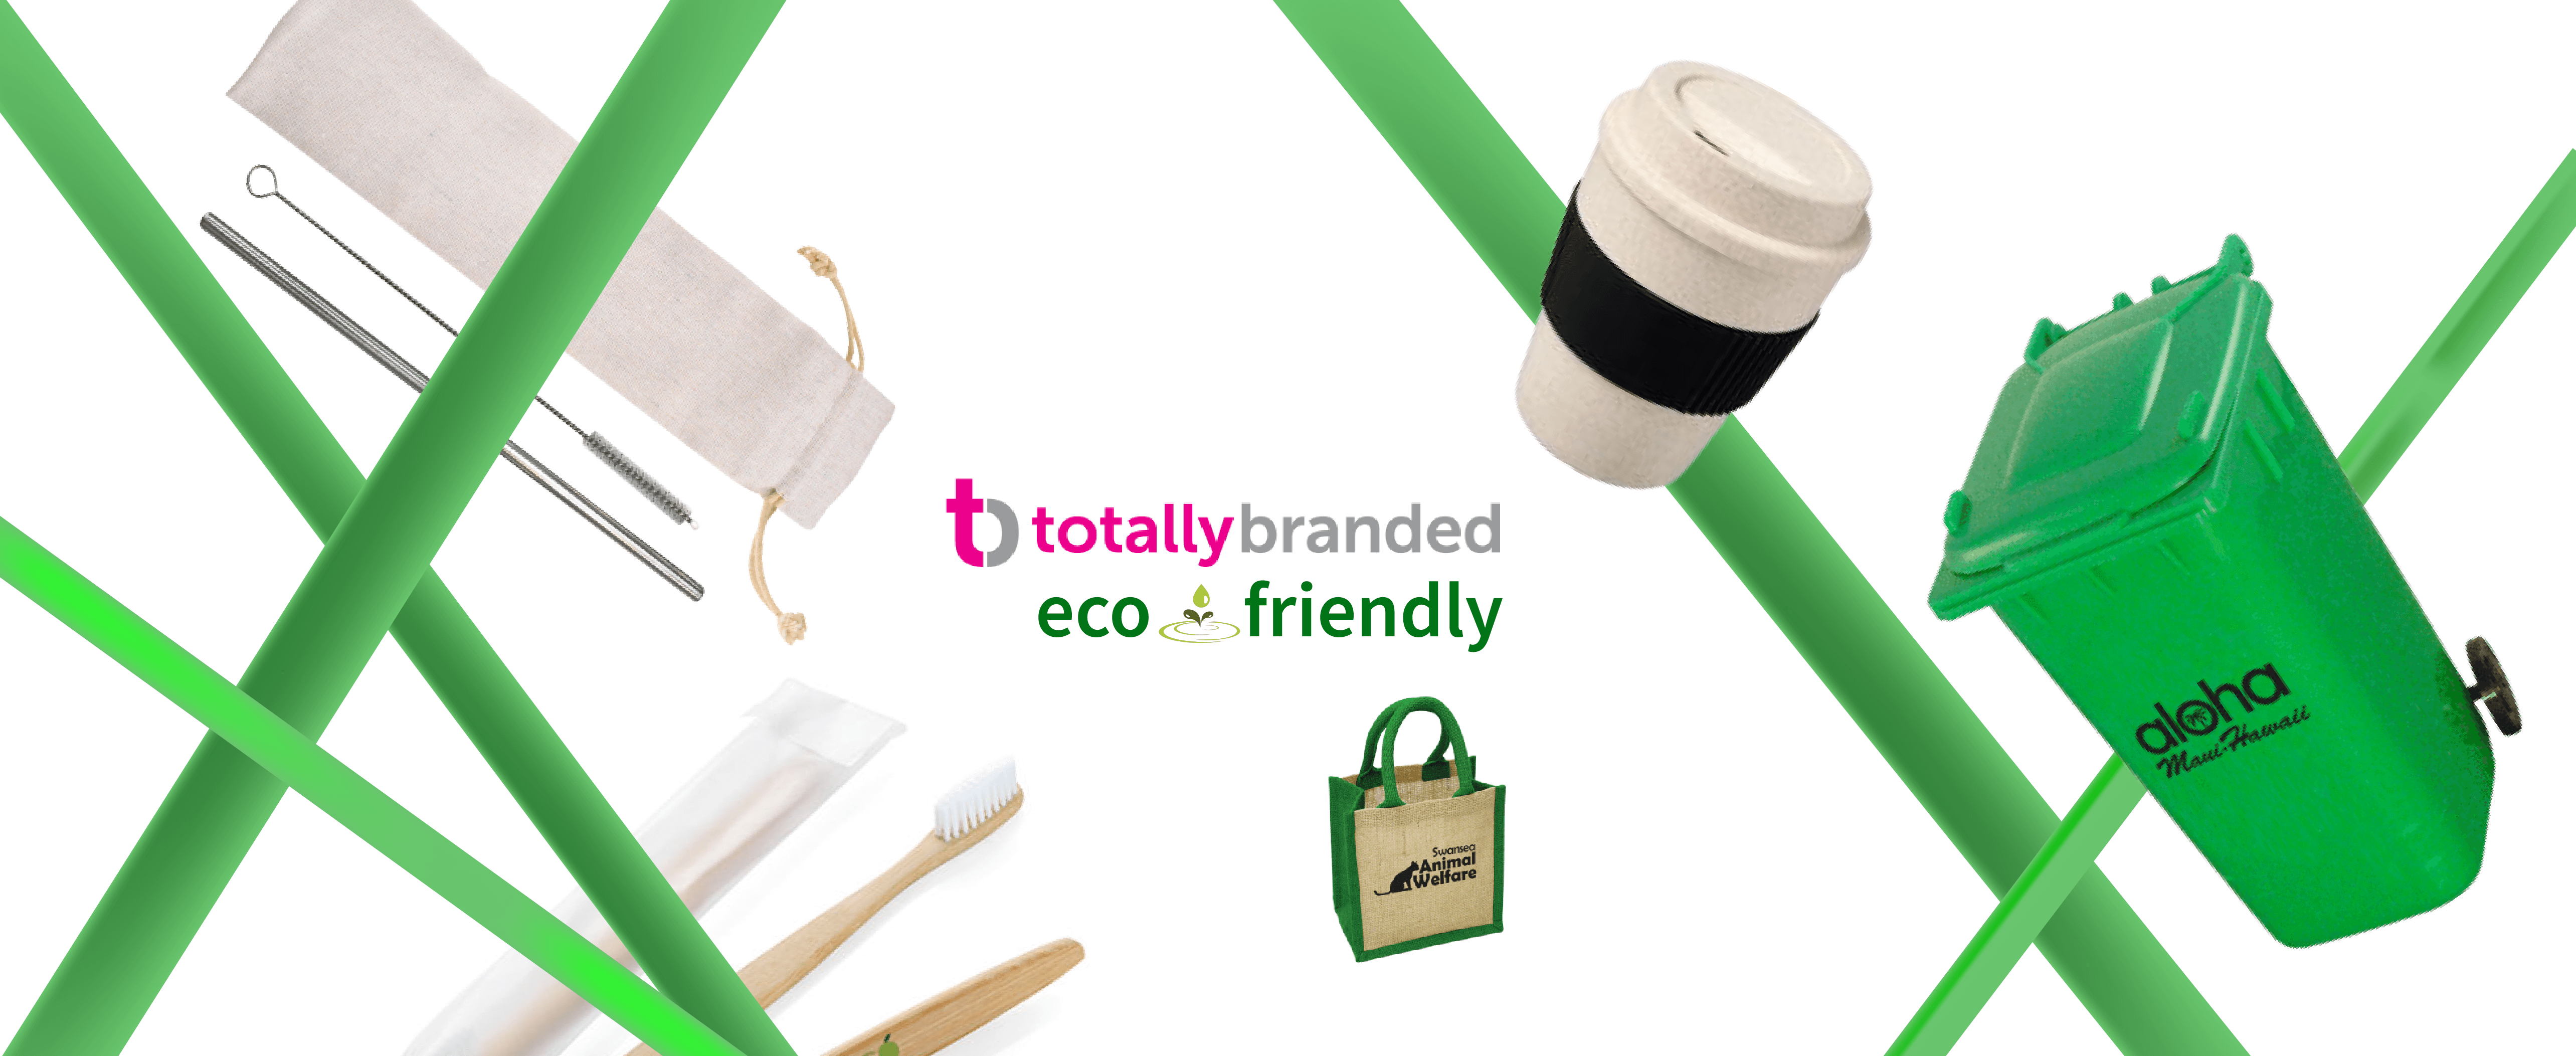 Eco Friendly Banner - Totally Branded